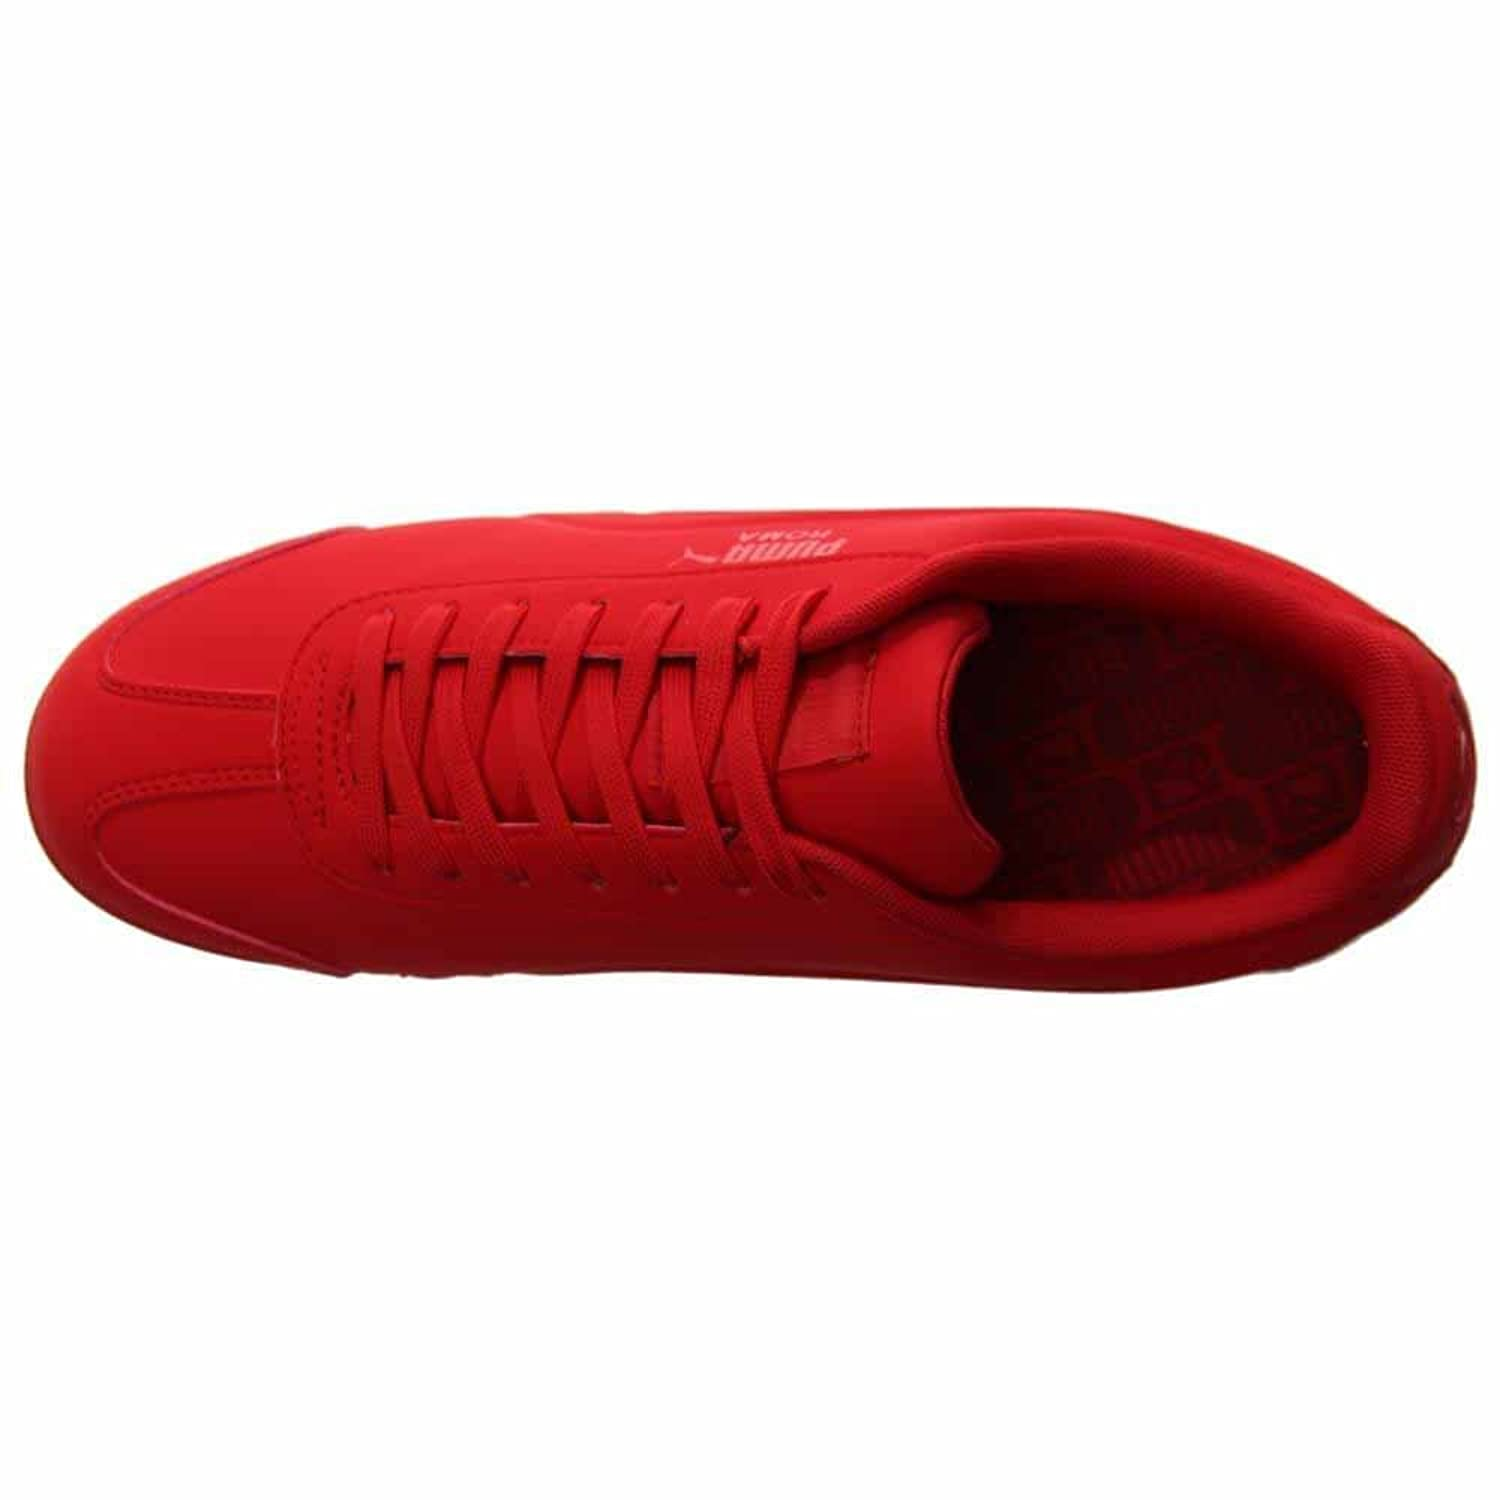 Puma Sko For Menn Roma MF1bK2B1